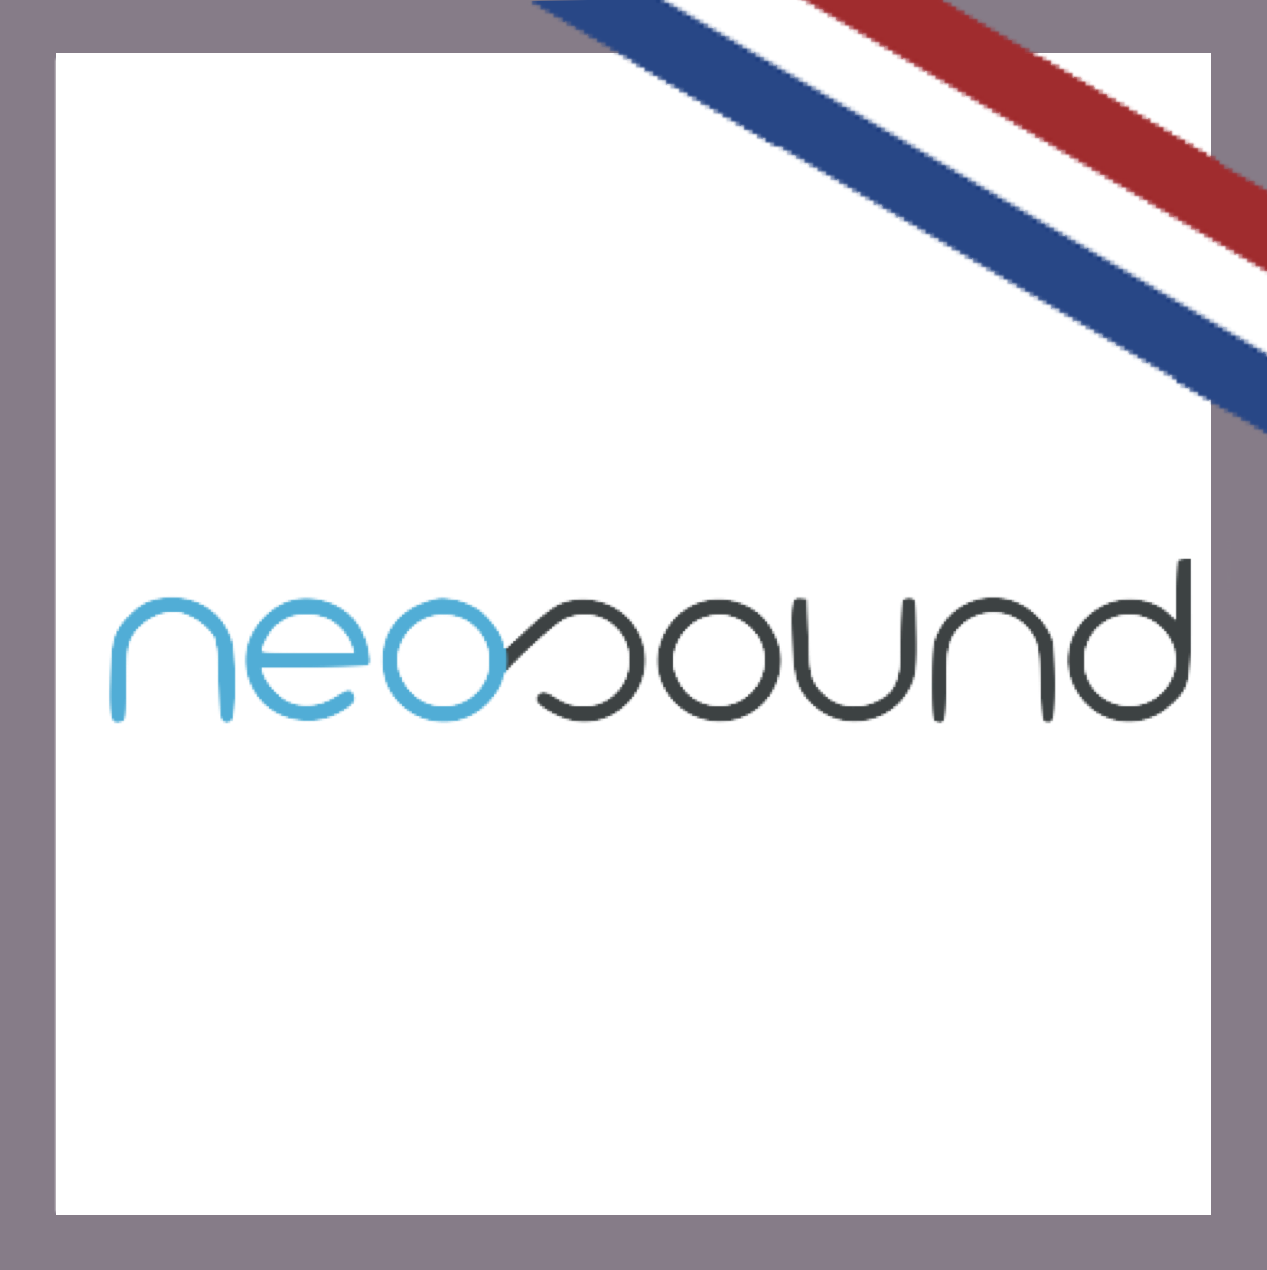 Neosound turns emotions into valuable data for call-centers, amongs other things.